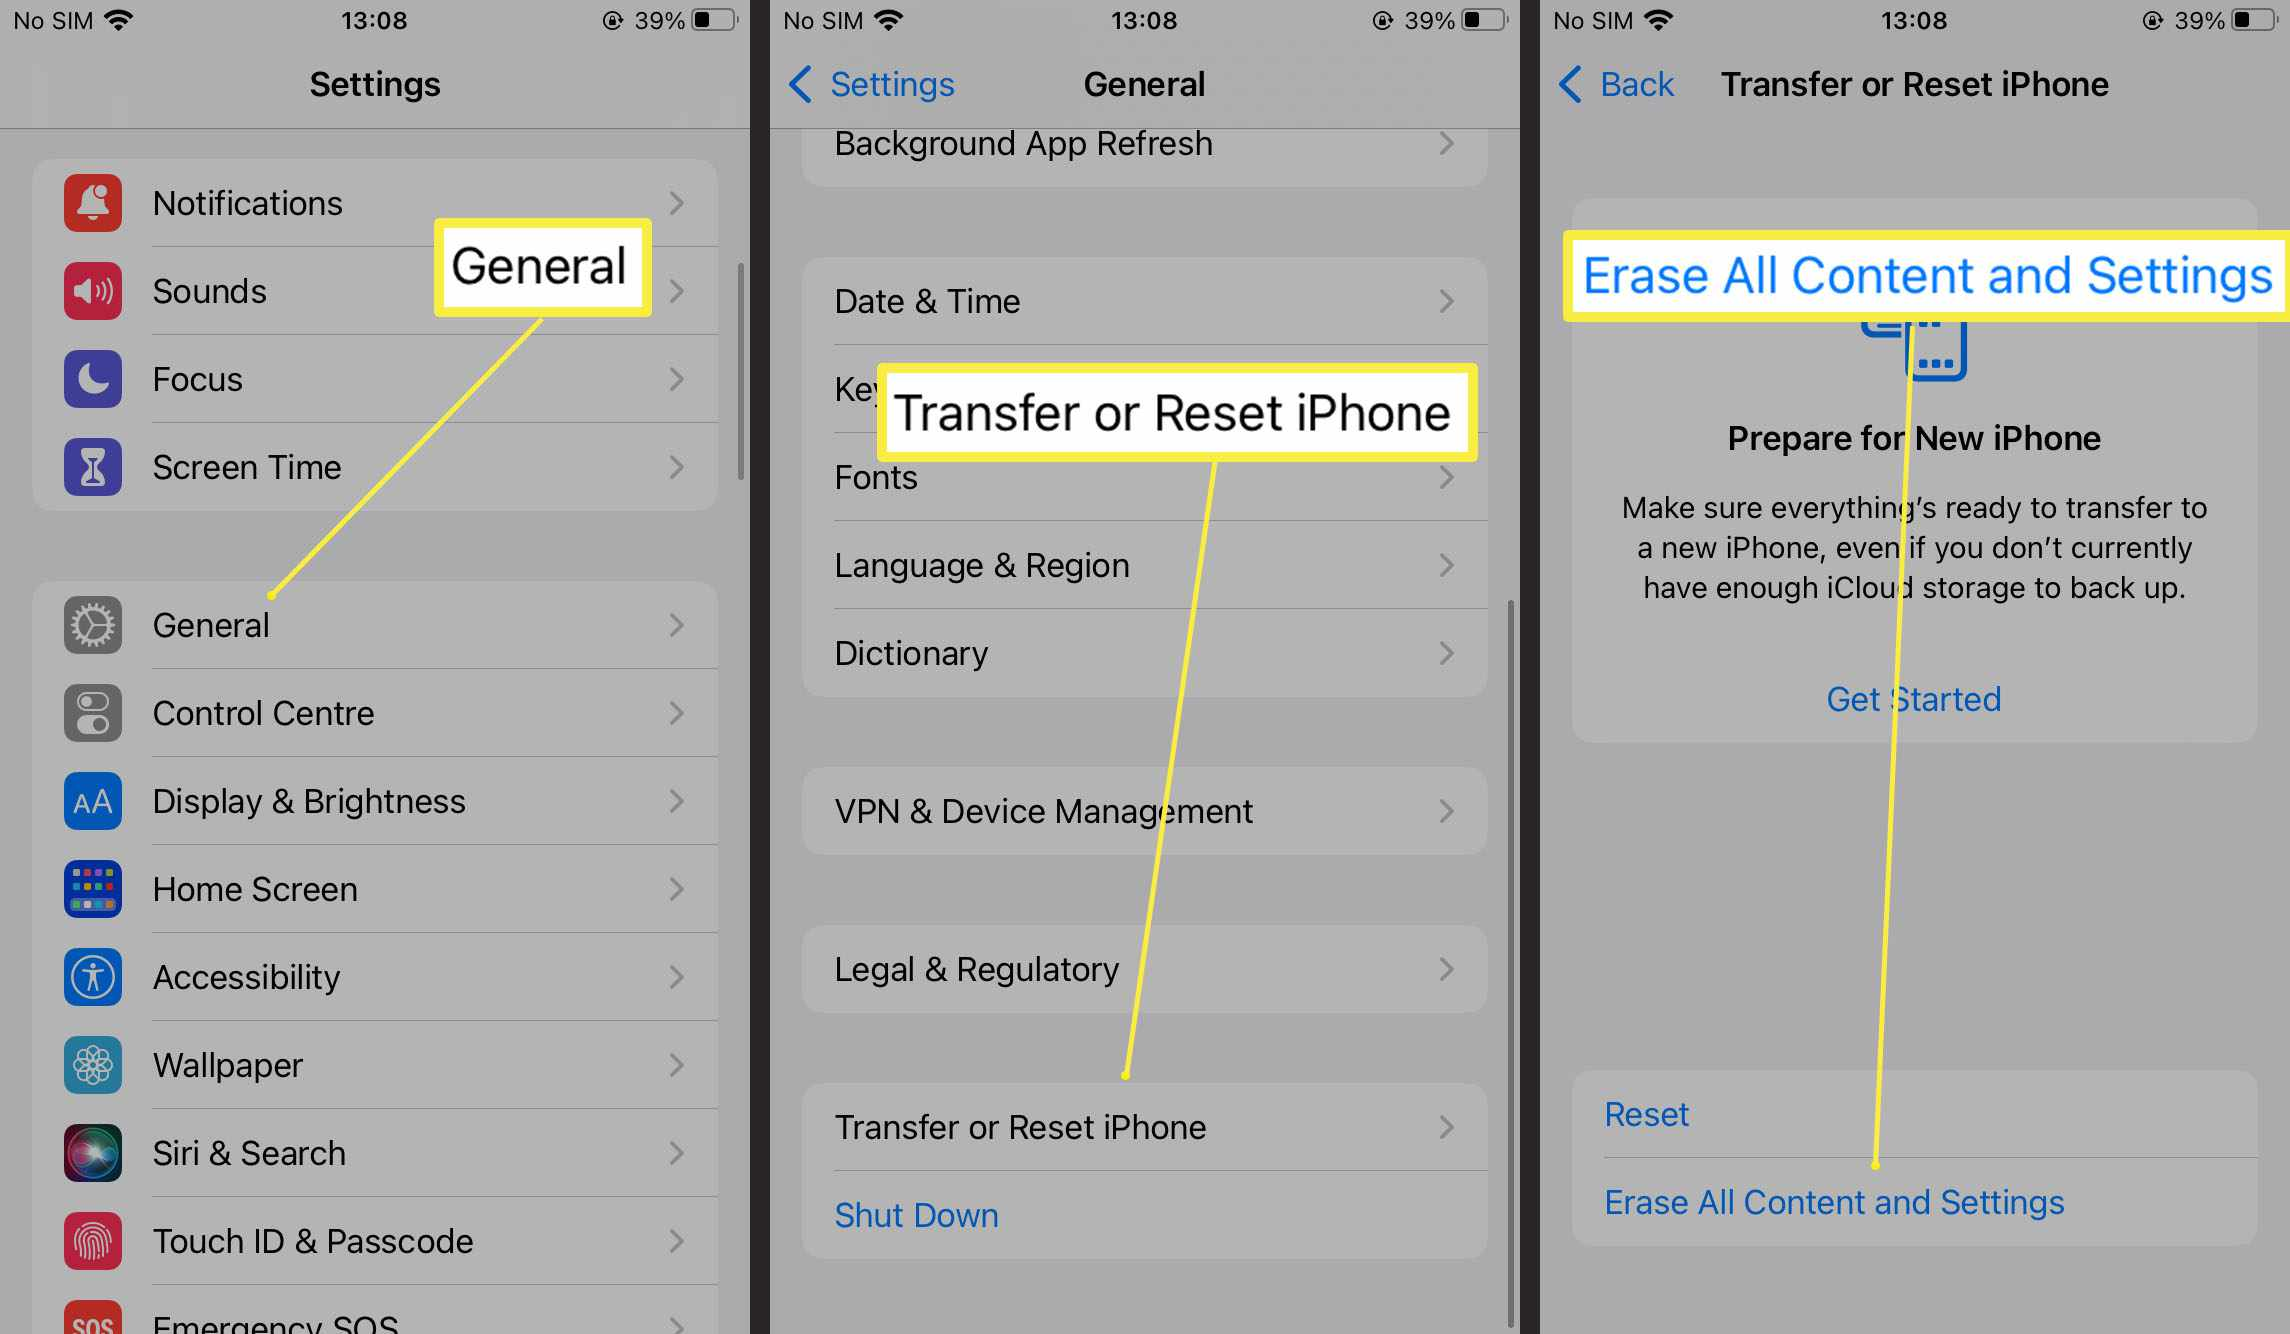 Steps required to erase all content and settings on iPhone